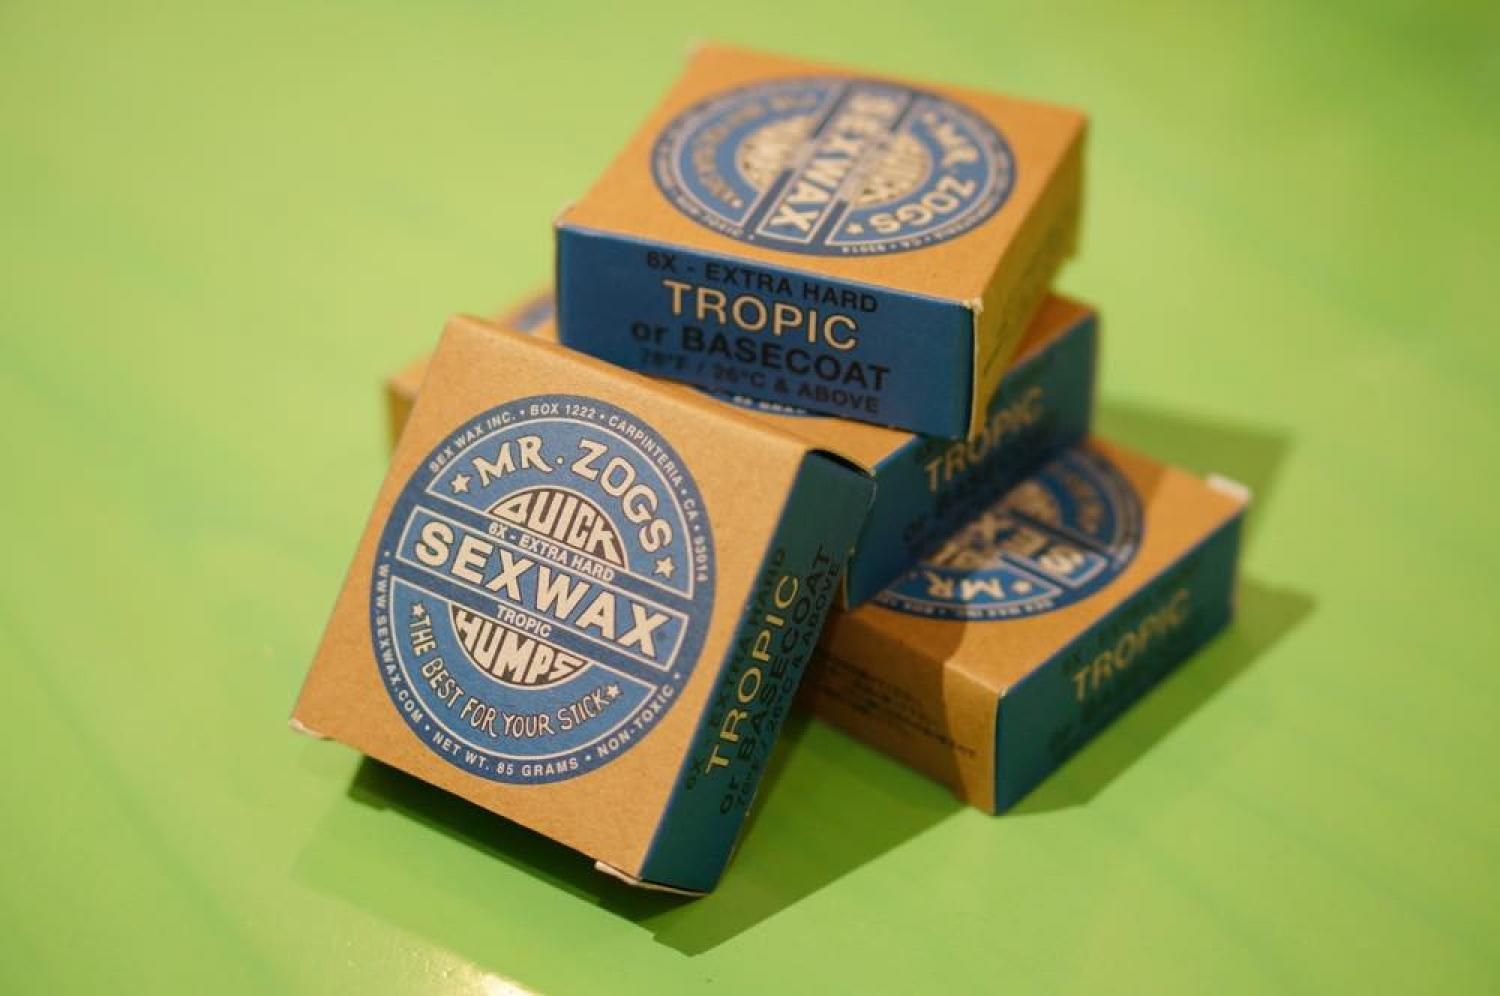 6X BLUE LABEL TROPIC